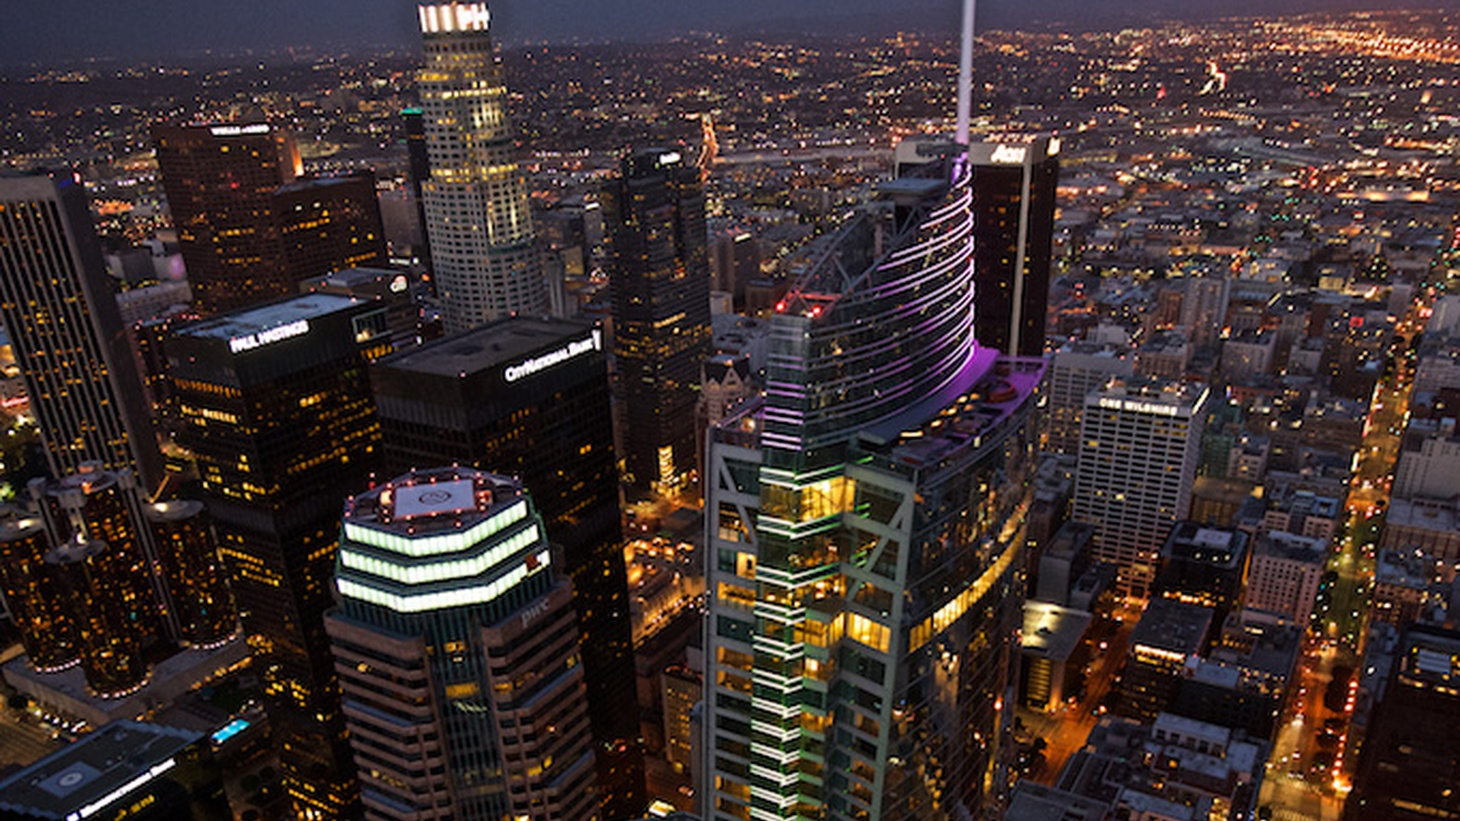 The tallest building west of the Mississippi River will officially open for business on Friday. The Wilshire Grand Center has been years in the making. It rises 73 stories, or 1,100 feet with its spire at the top, and includes a near-900 room InterContinental Hotel. And its architecture tells the story of a changing Los Angeles.